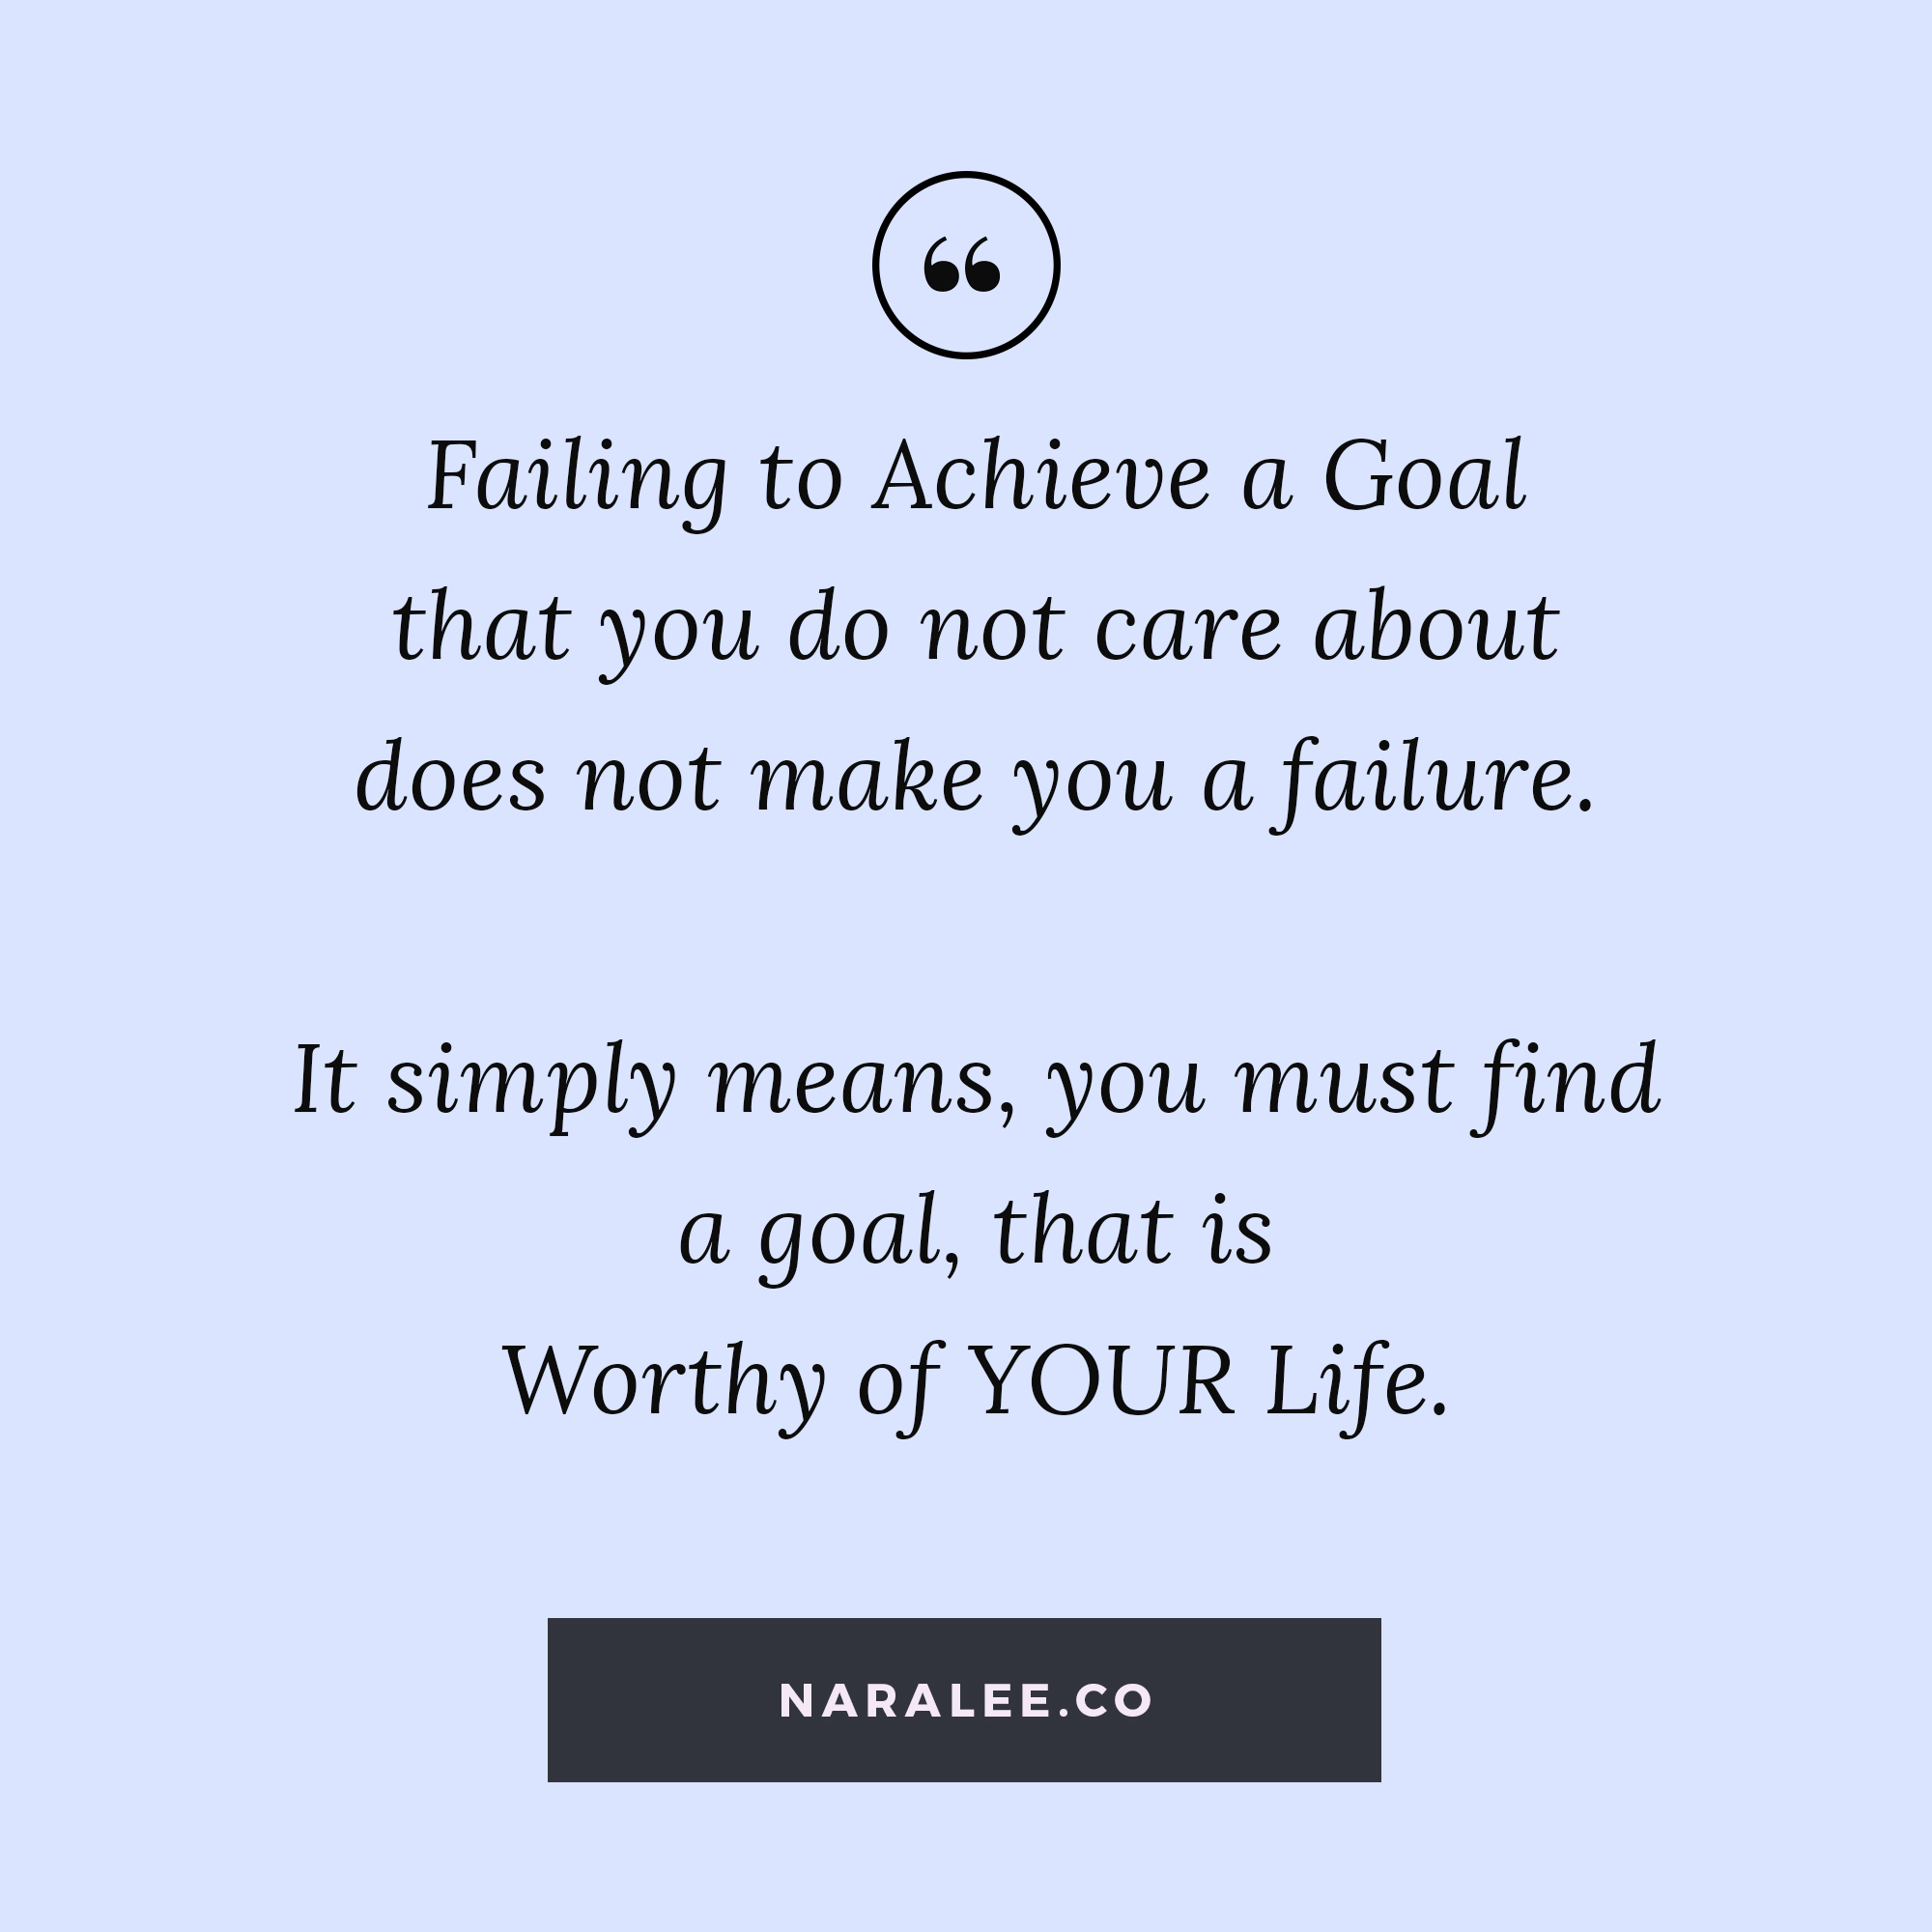 [Goals-Quotes] Nara Lee Quotes - Goal Worthy of your Life.jpg